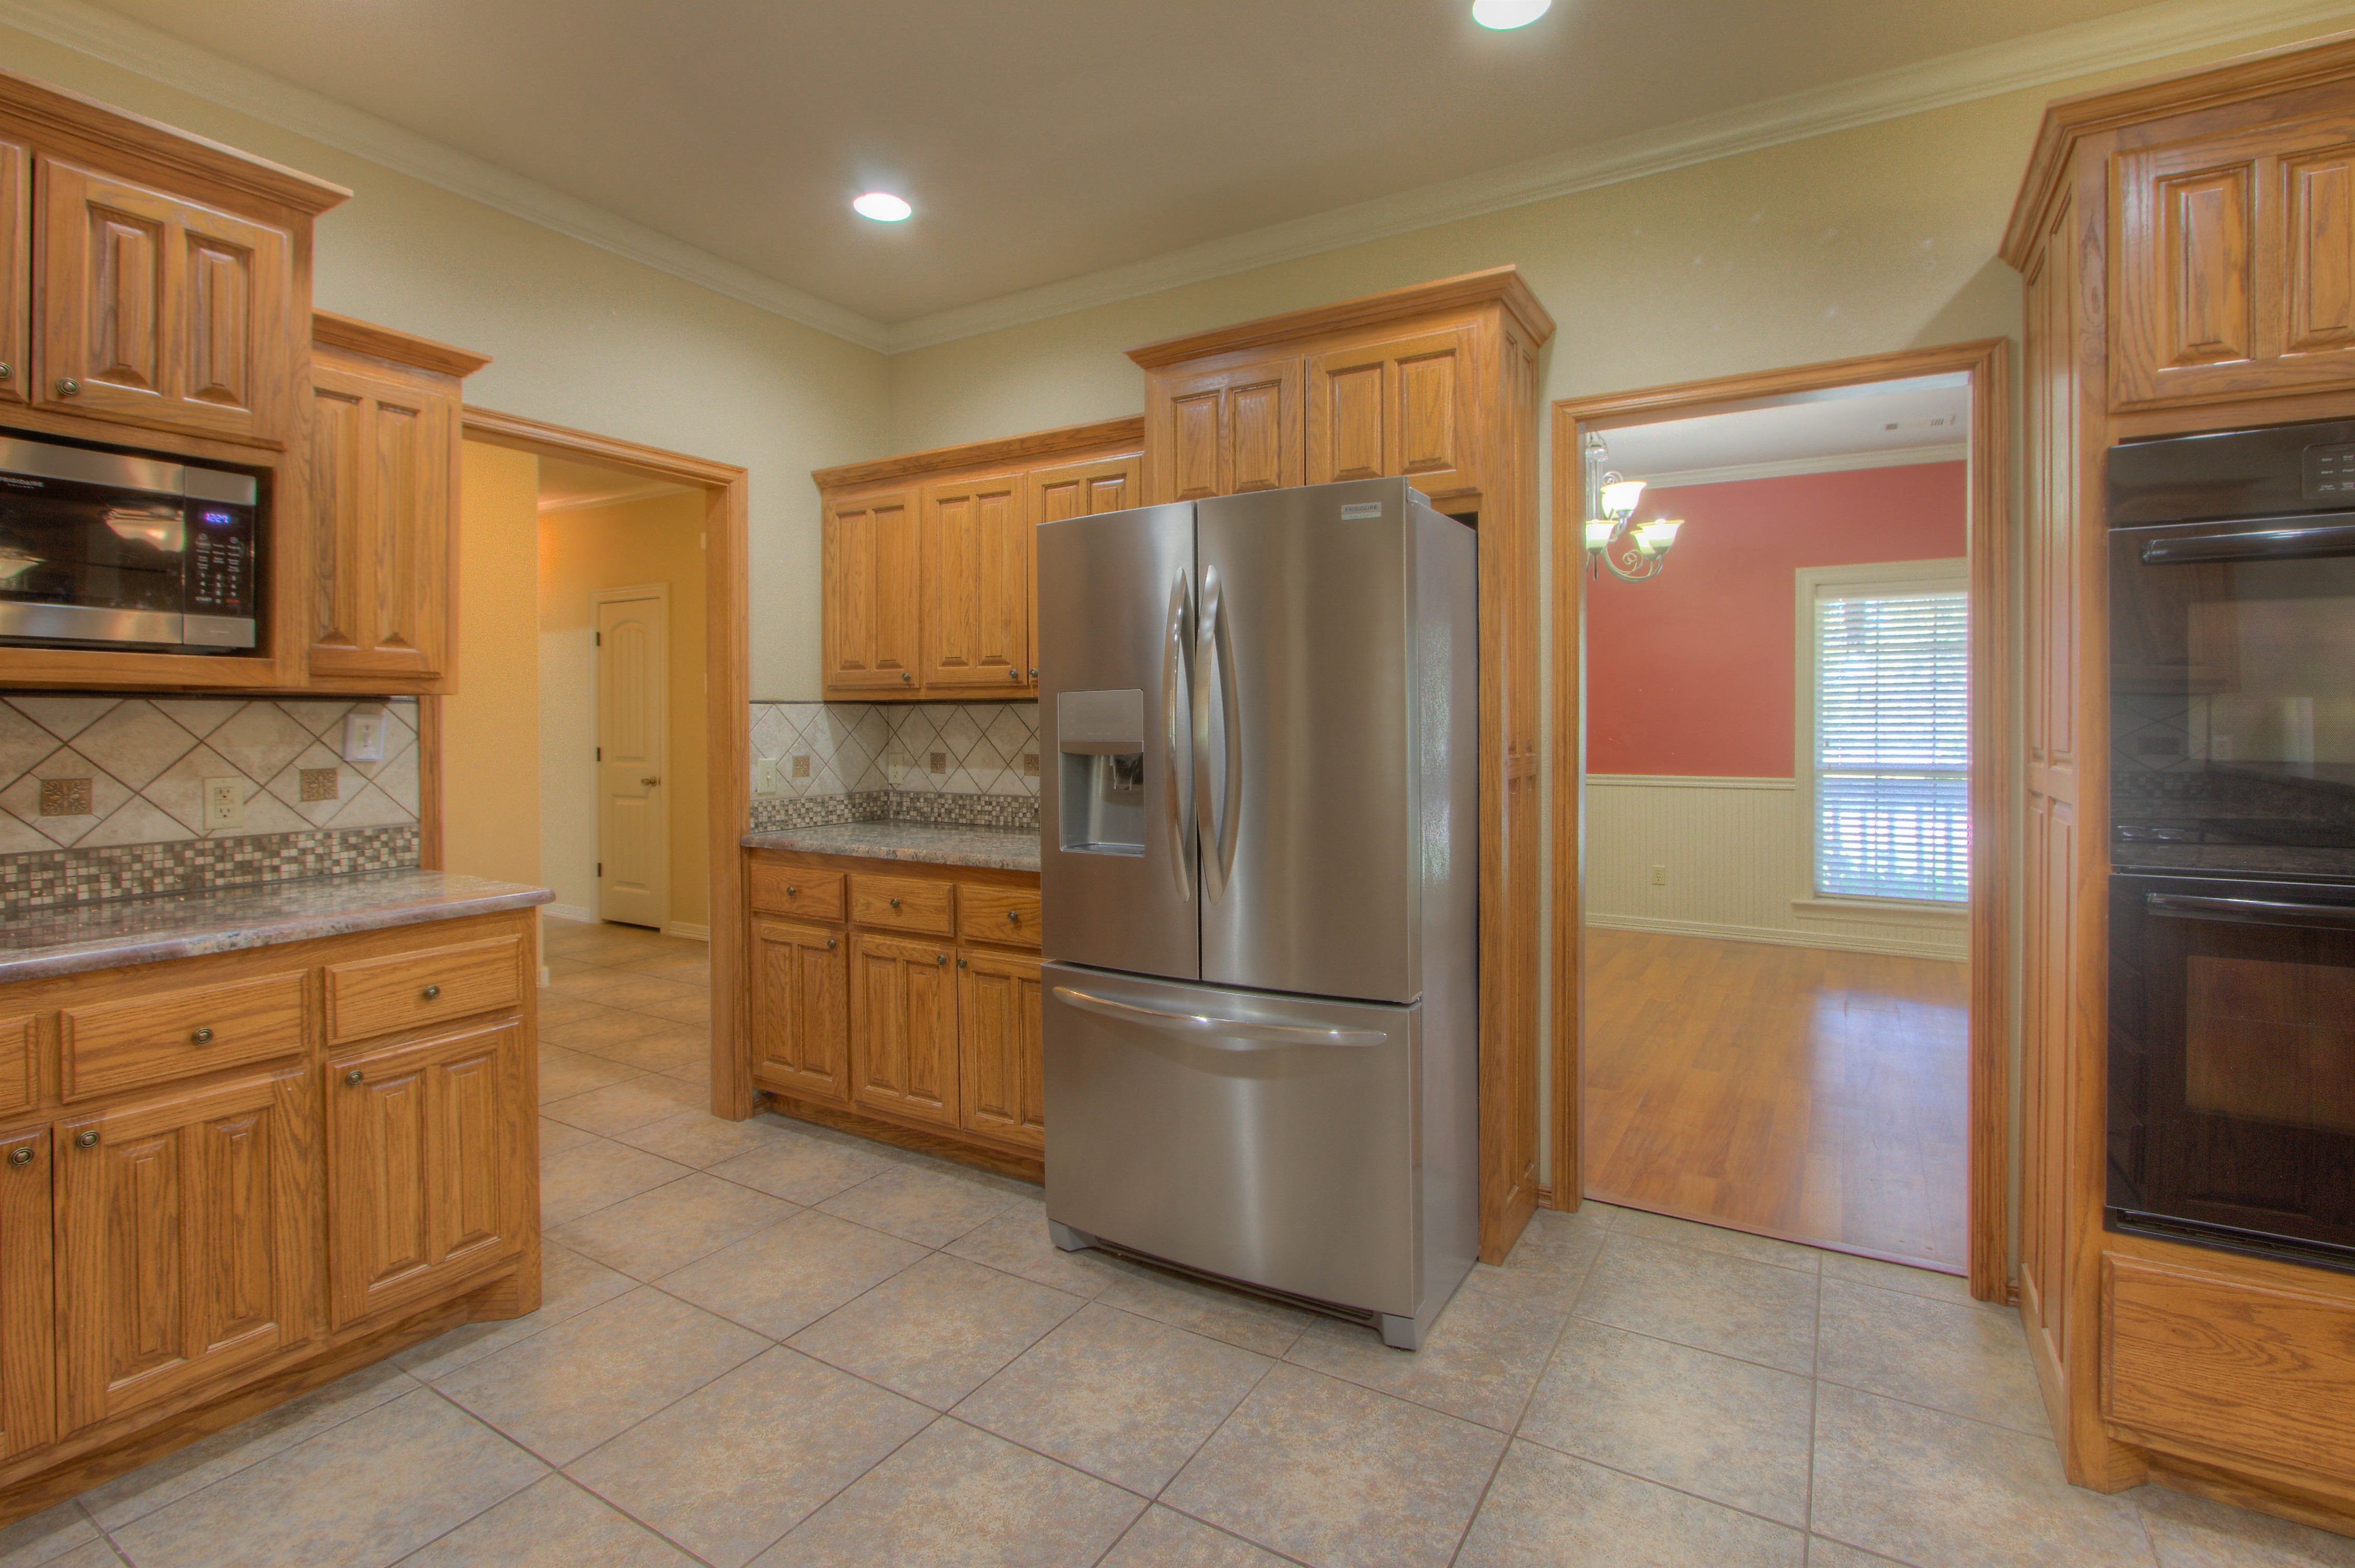 18117 S 154th East Avenue Property Photo 6